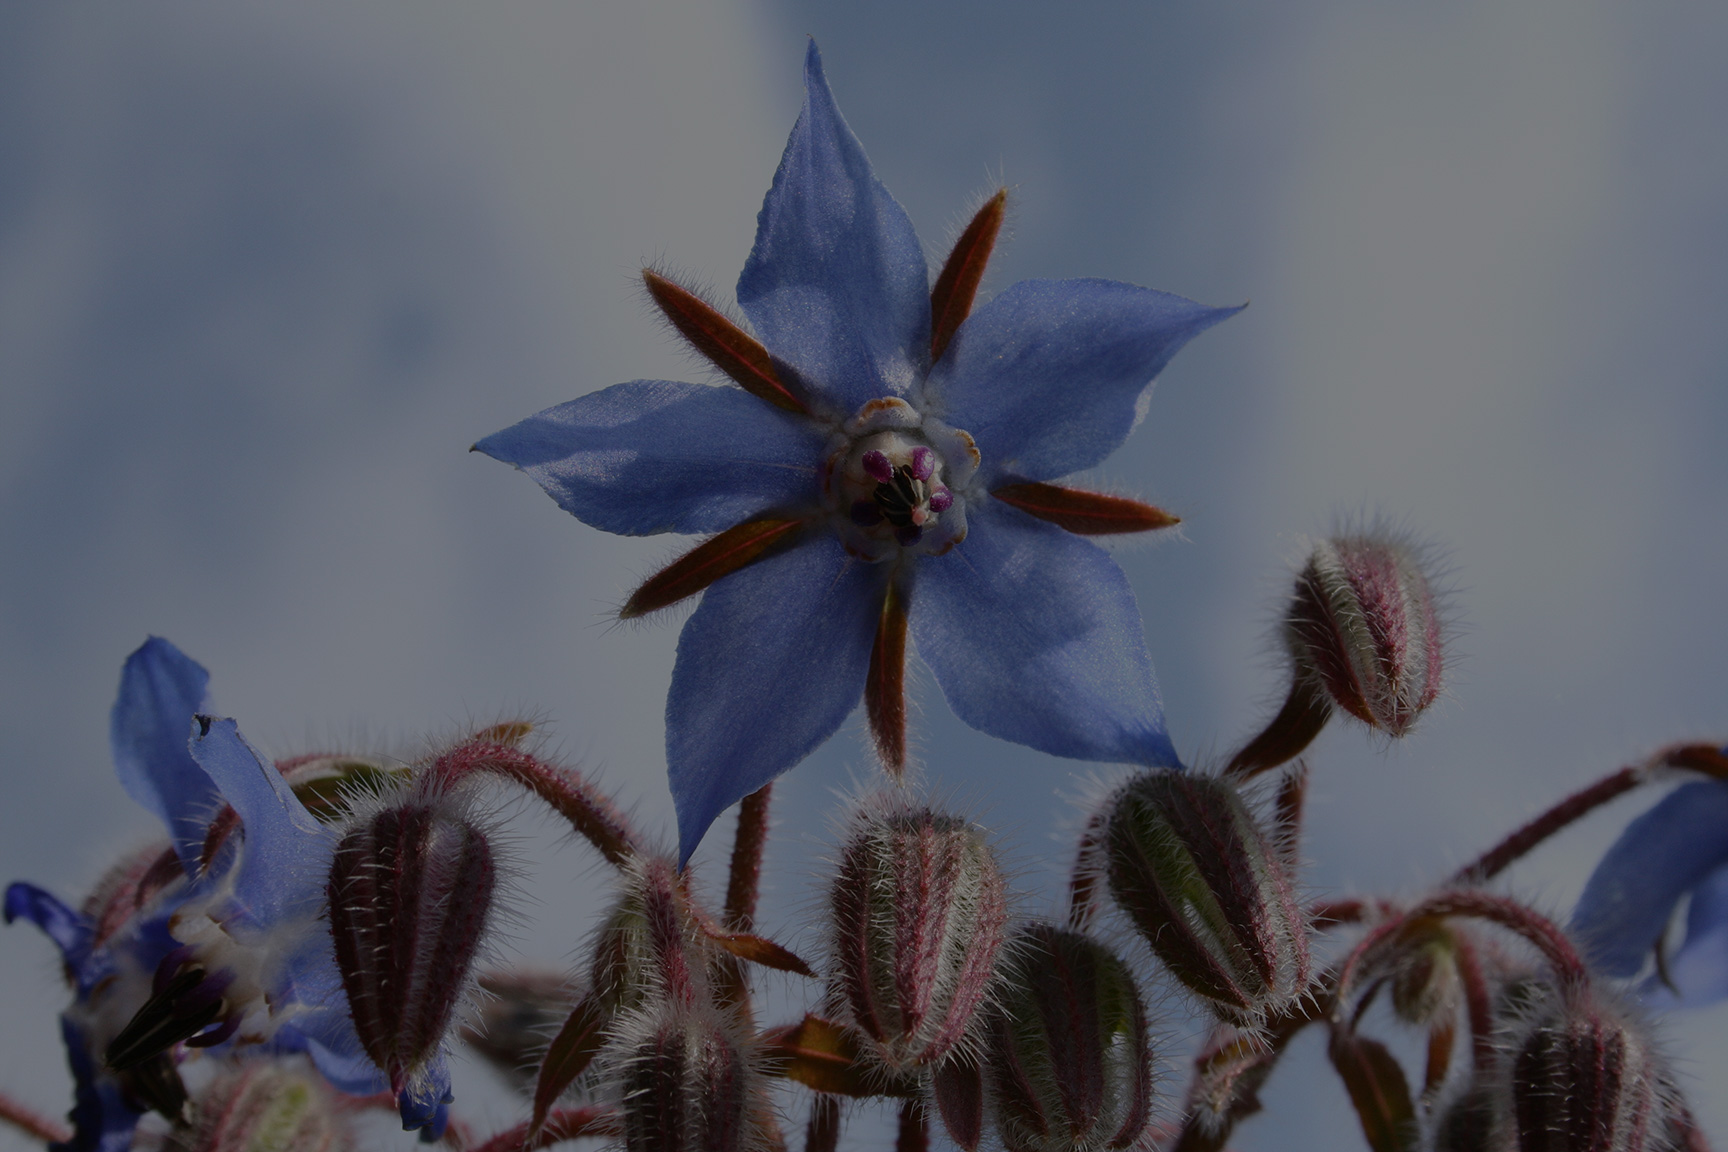 It's great for your garden. - Borage is a wonderful plant to have around the garden.In the garden, the uses of borage include repelling pests such as hornworms, attracting pollinators like bees, and aiding any plants it is interplanted with by increasing resistance to pests and disease. It is also helpful to, and compatible with, most plants — notably tomatoes, strawberries and squash.*